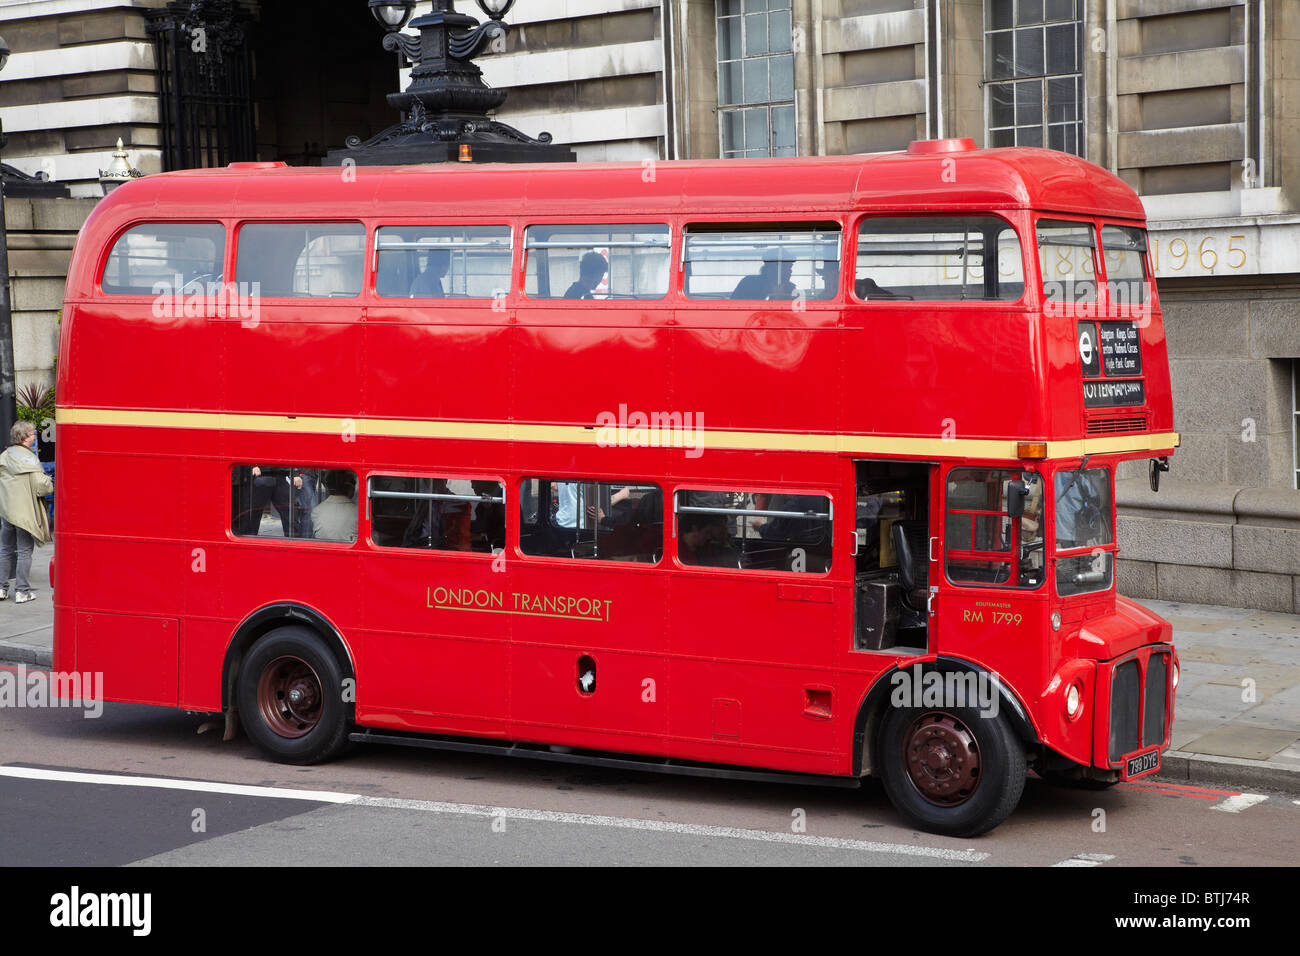 Old Routemaster double-decker bus (1963), London, England, United Kingdom - Stock Image